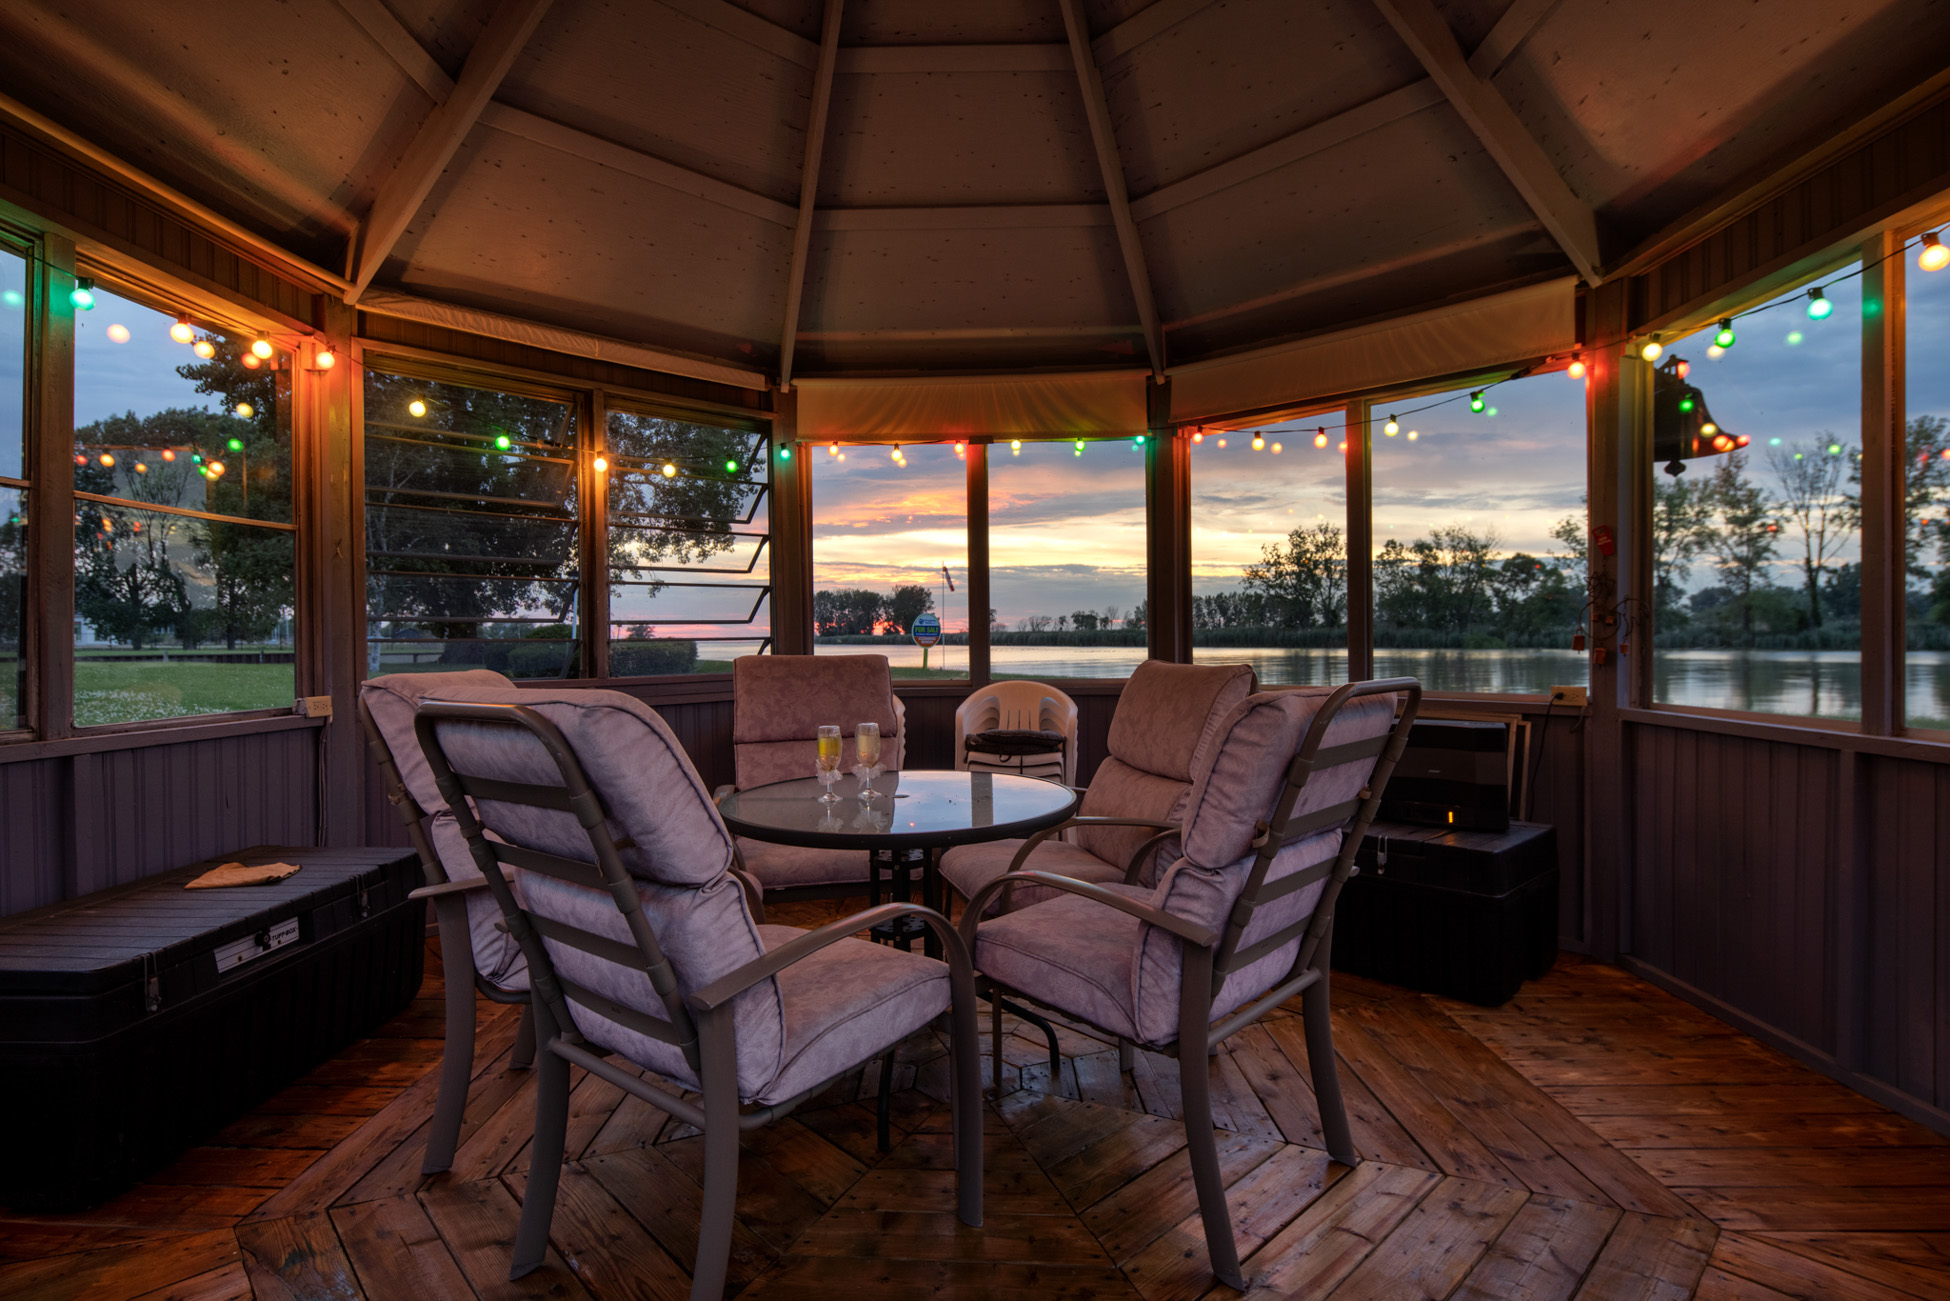 Gazebo with multi-coloured light garlands and patio set overlooking the sunset with water view